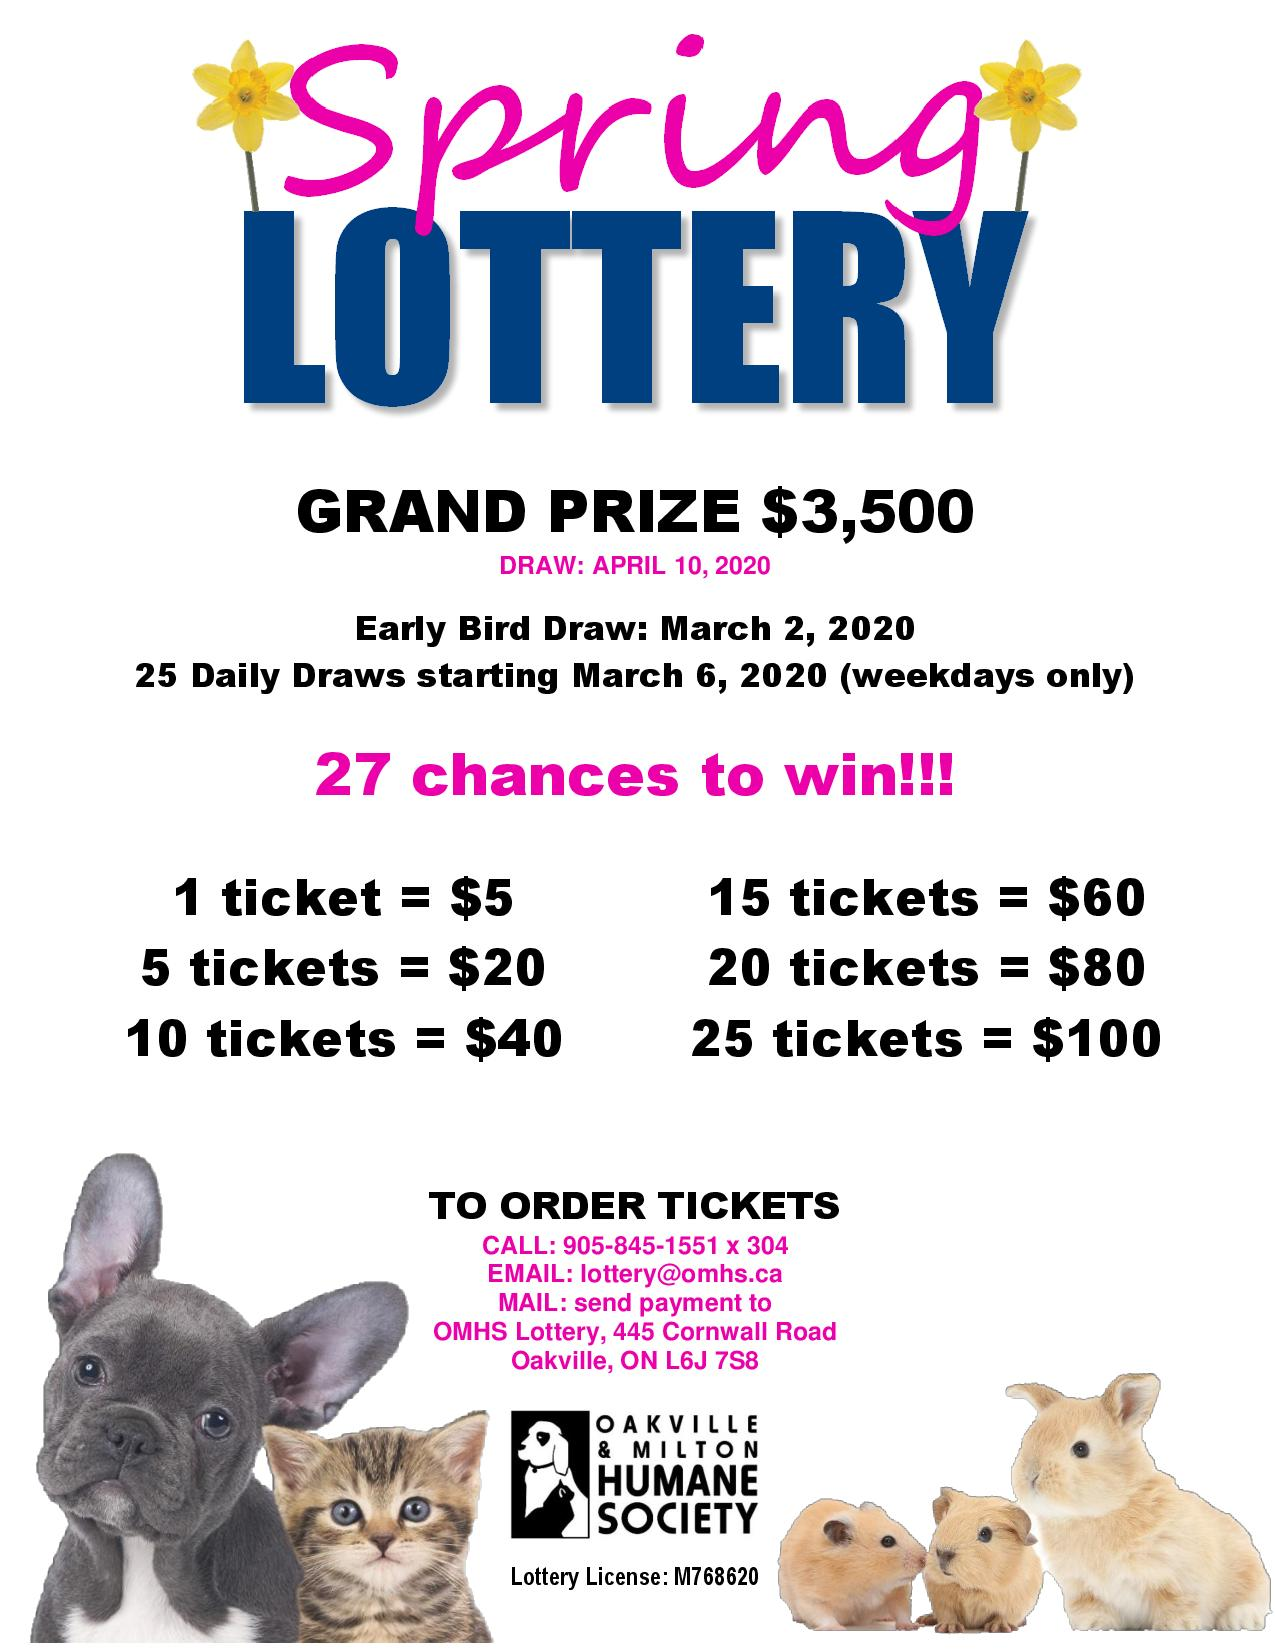 2020 Spring Lottery Poster RD website page 001 1 - Lottery